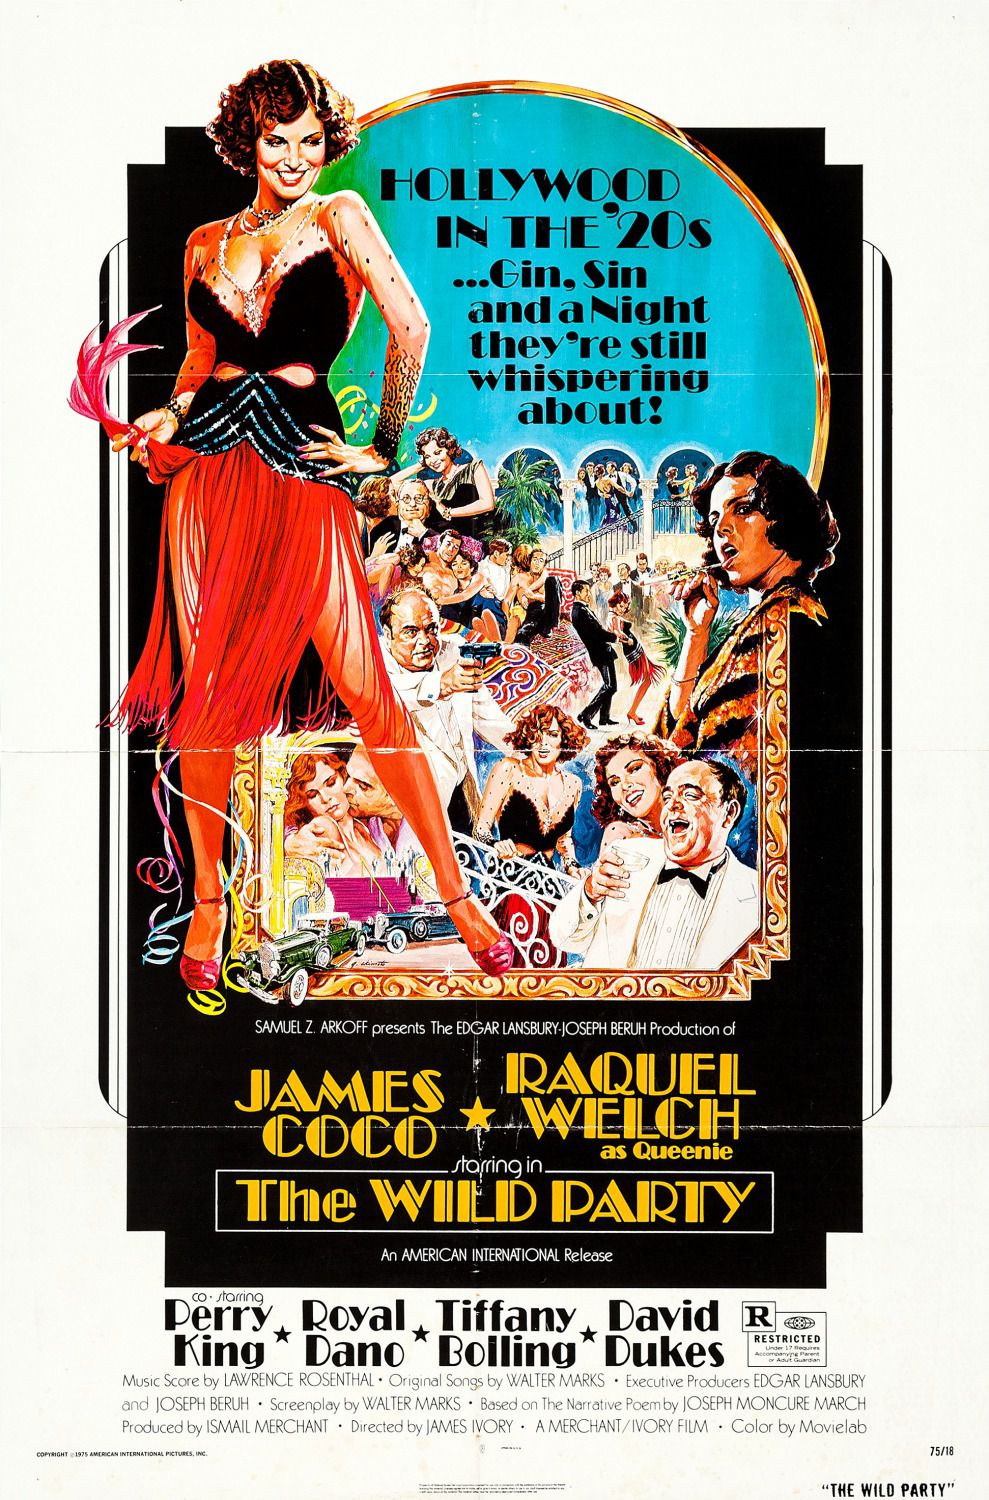 Wild Party - 1975 - James Coco - Raquel Welch  - classic film poster